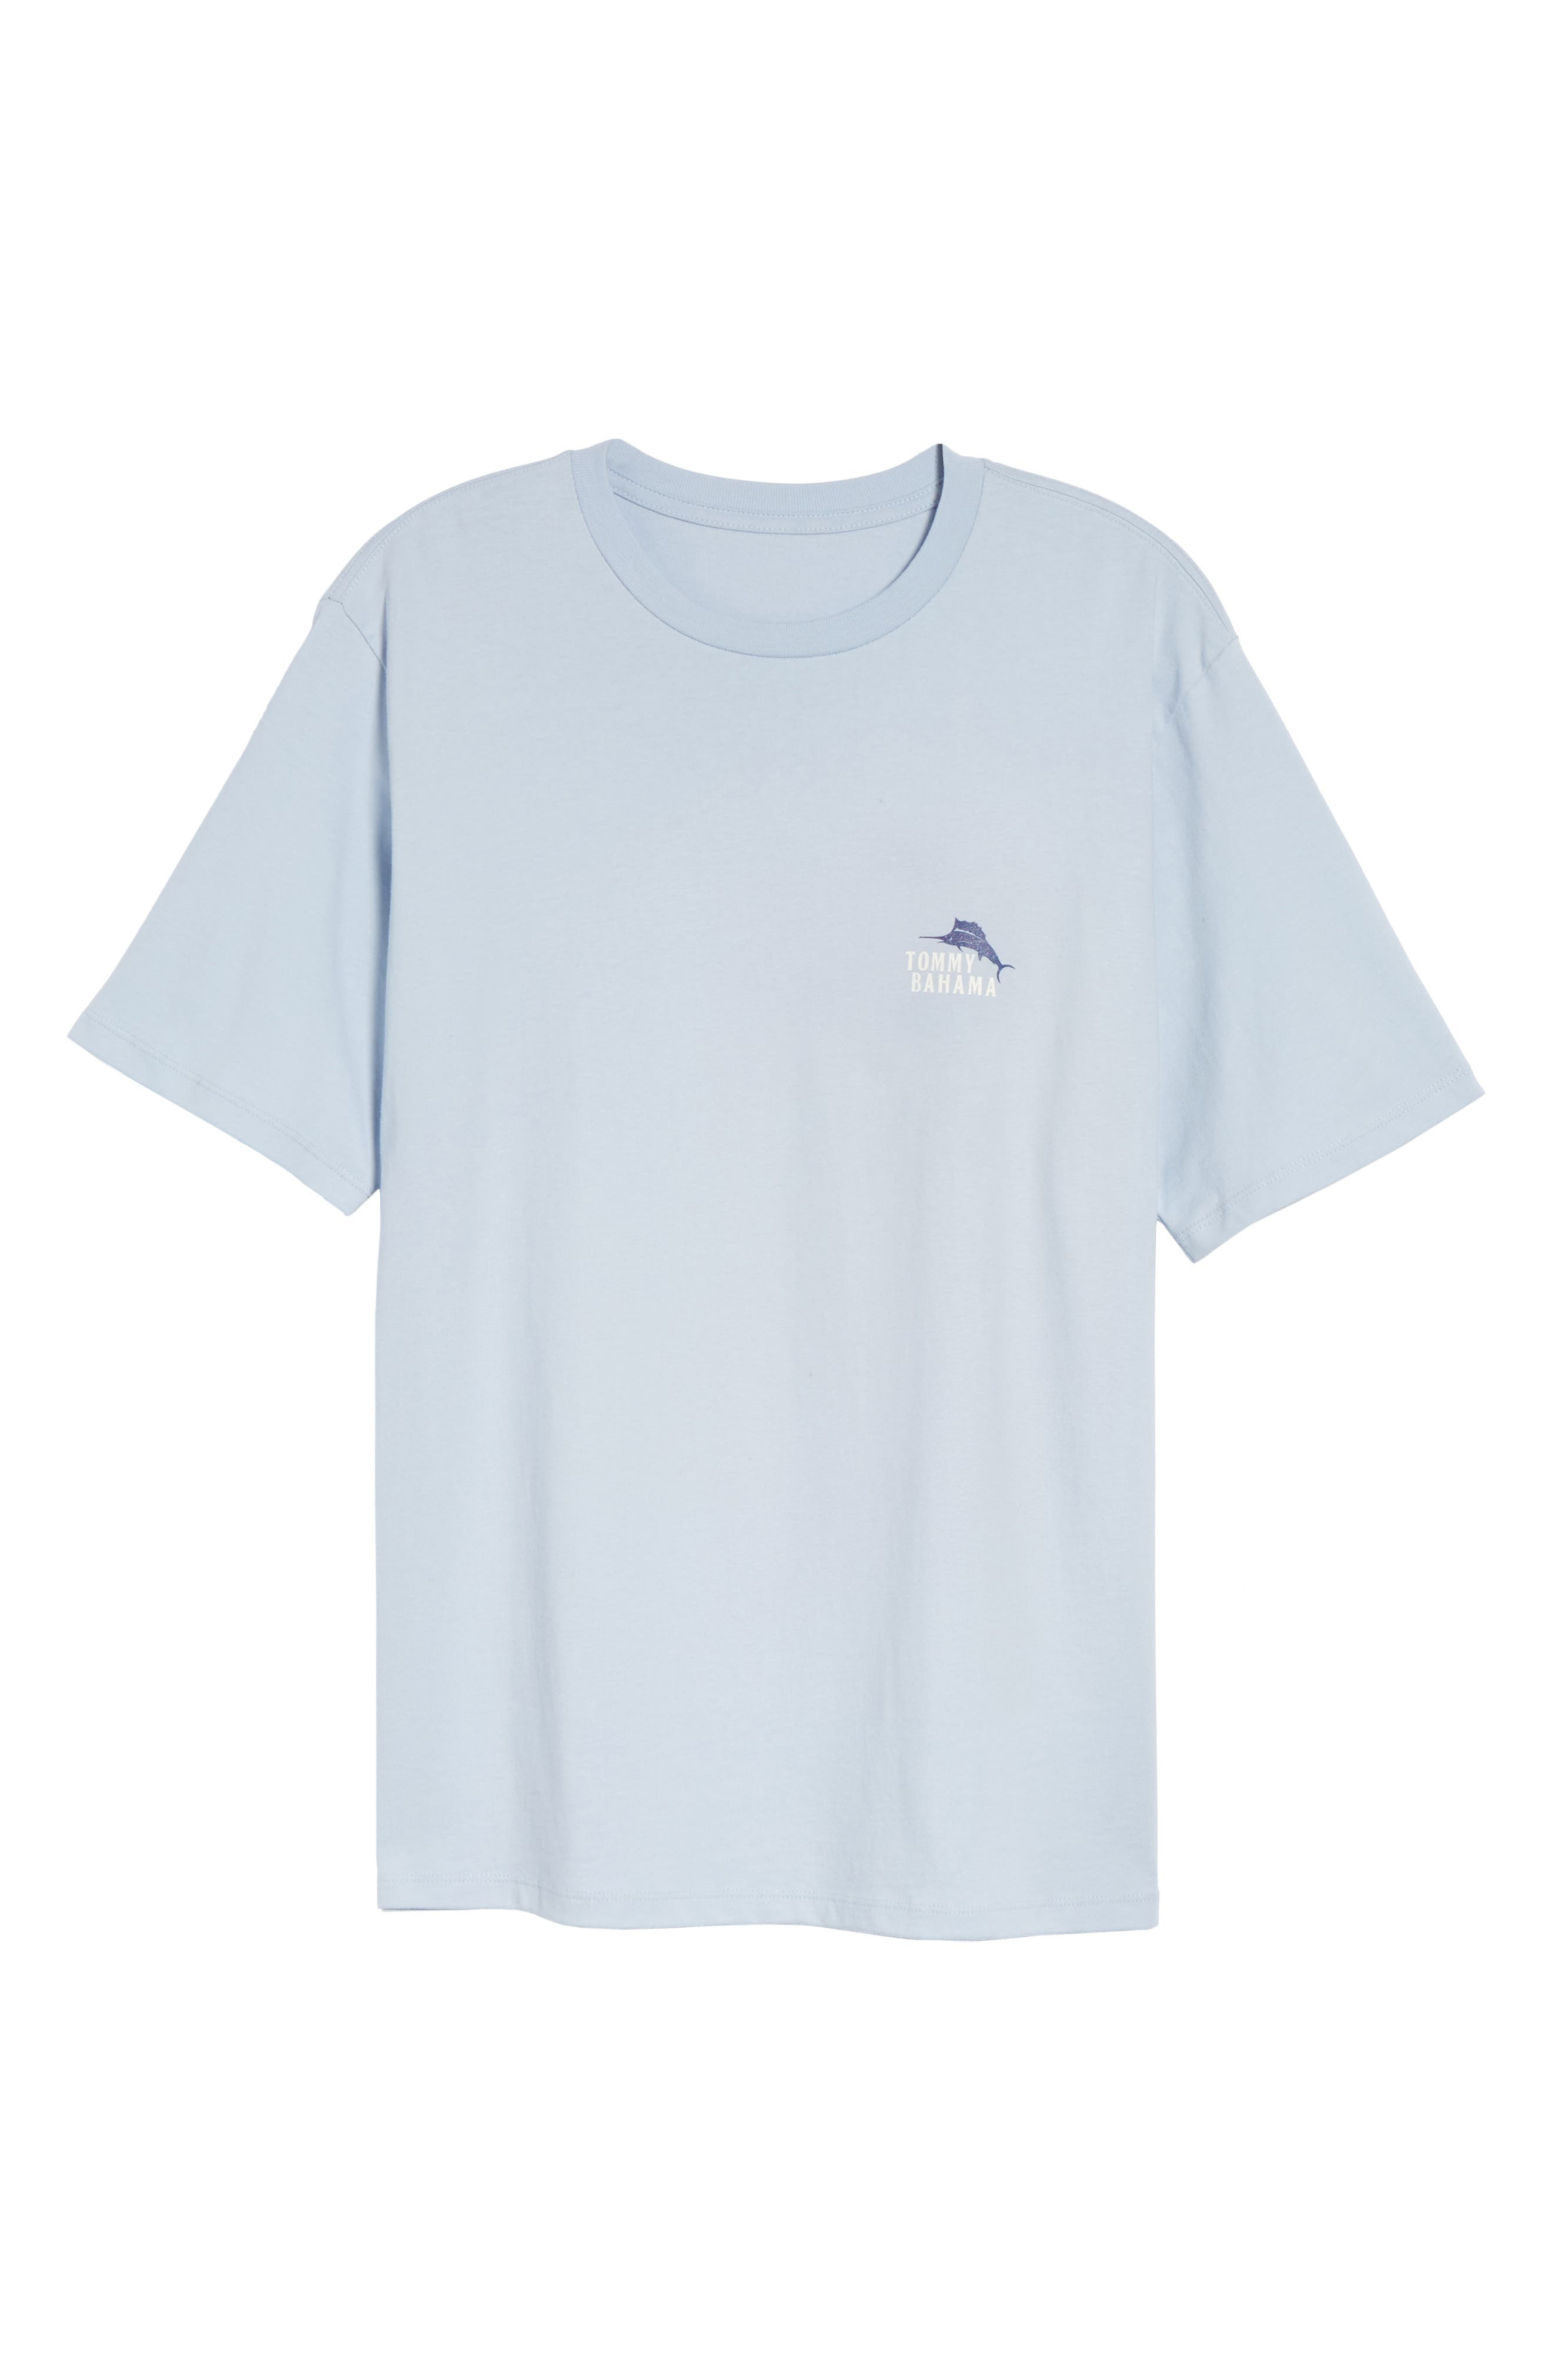 Casting Call Standard Fit T-Shirt,                             Alternate thumbnail 6, color,                             400